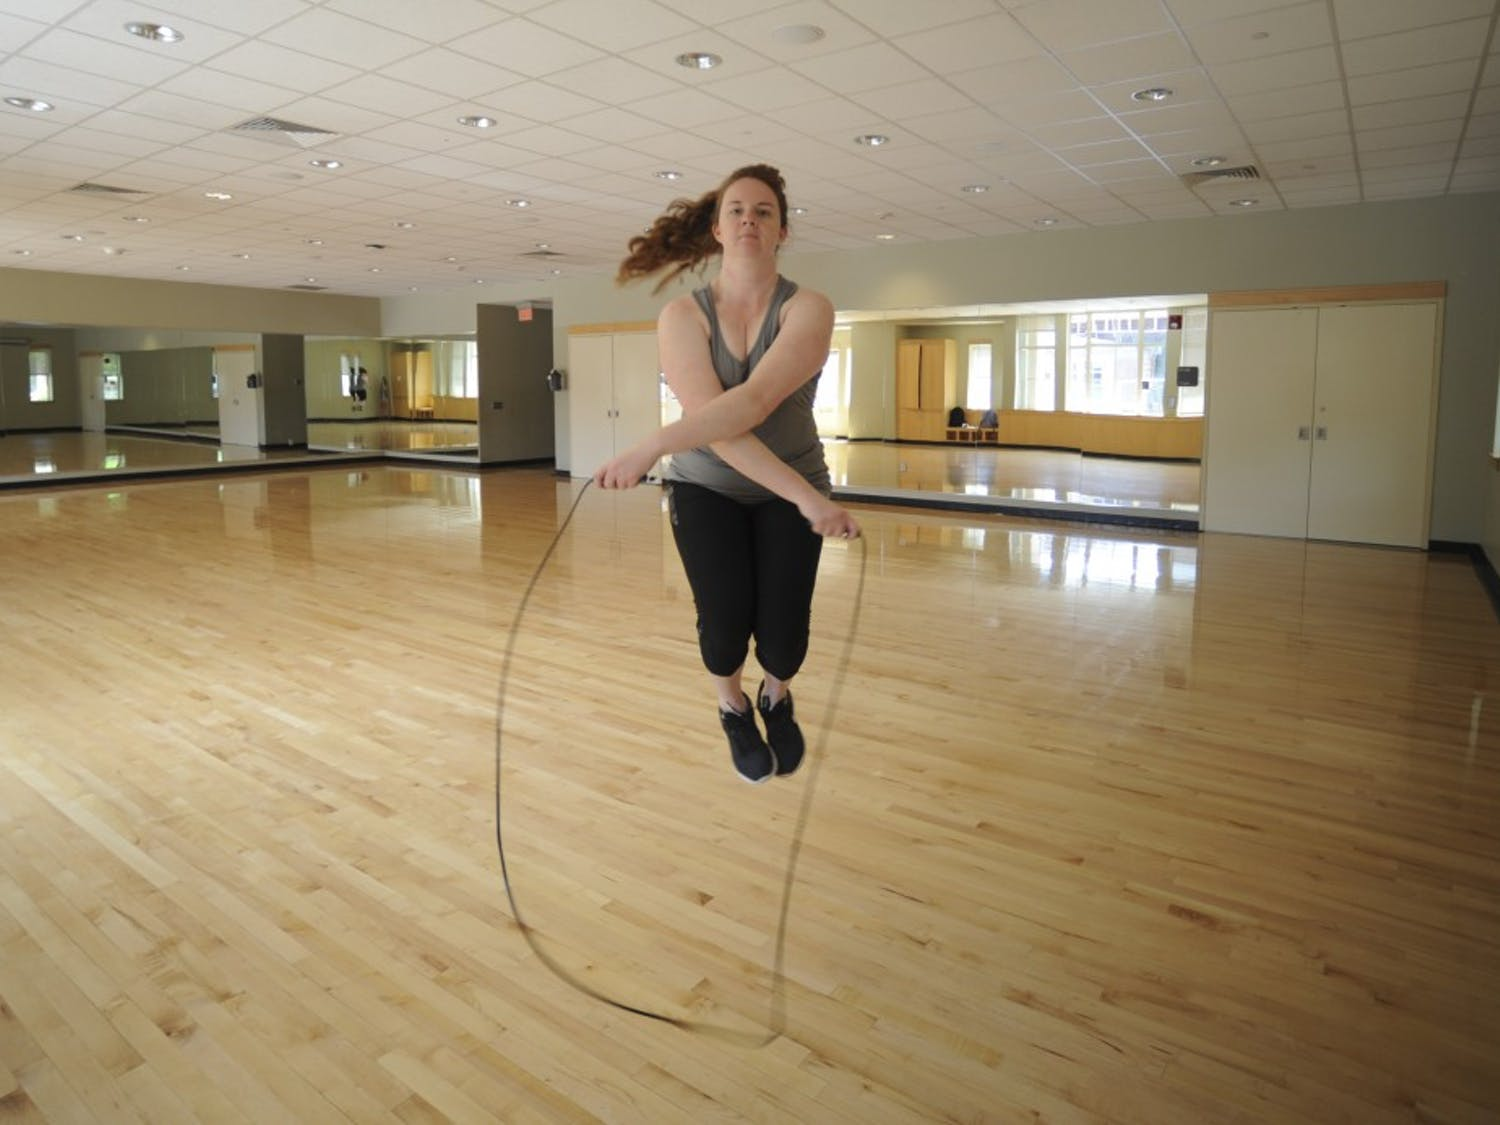 First-year music major Lauren Ragsdale likes to use the on-campus gyms to jump rope as a way to stay active. She is pictured here working out in a studio room in Ram's Head Gym at the University of North Carolina at Chapel Hill on Wednesday April, 24, 2019.